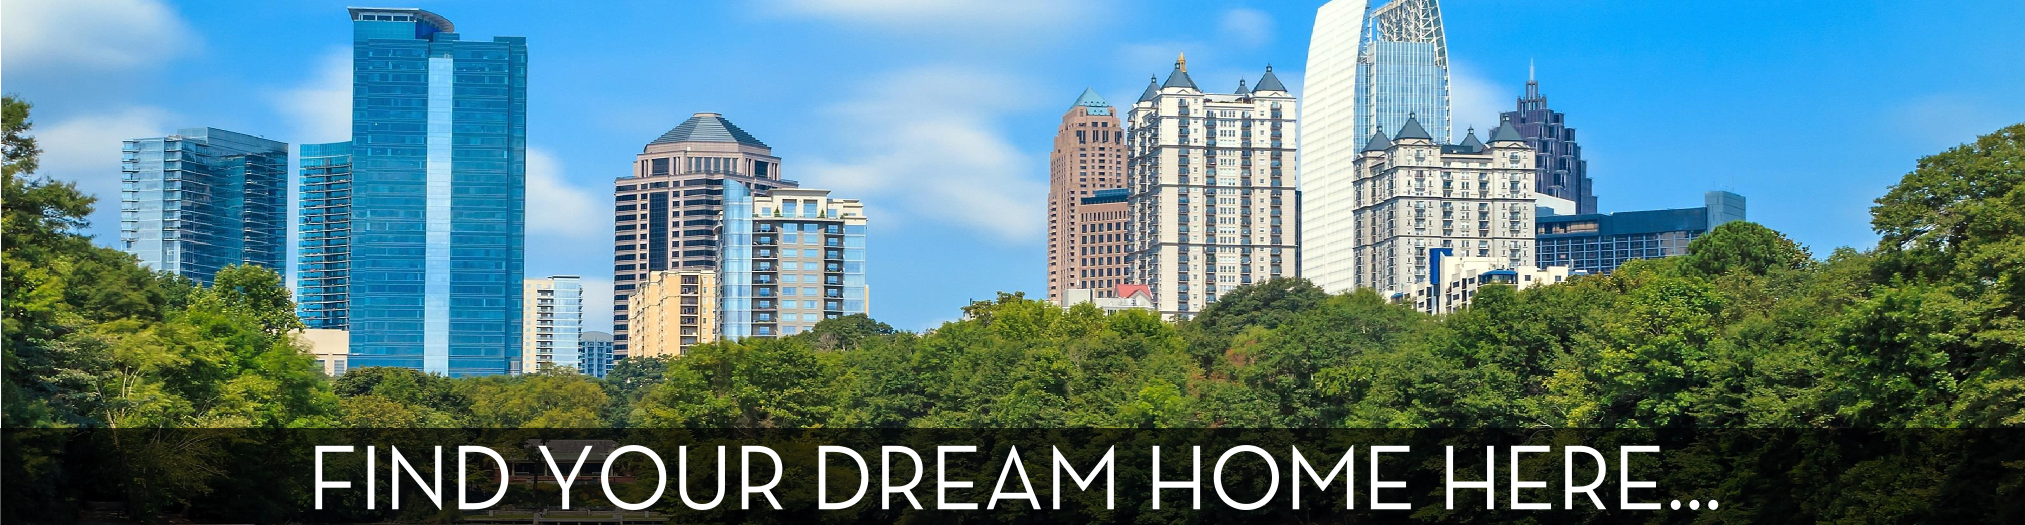 KEITH SHARP, Keller Williams Realty - Home Search - ATLANTA  Homes